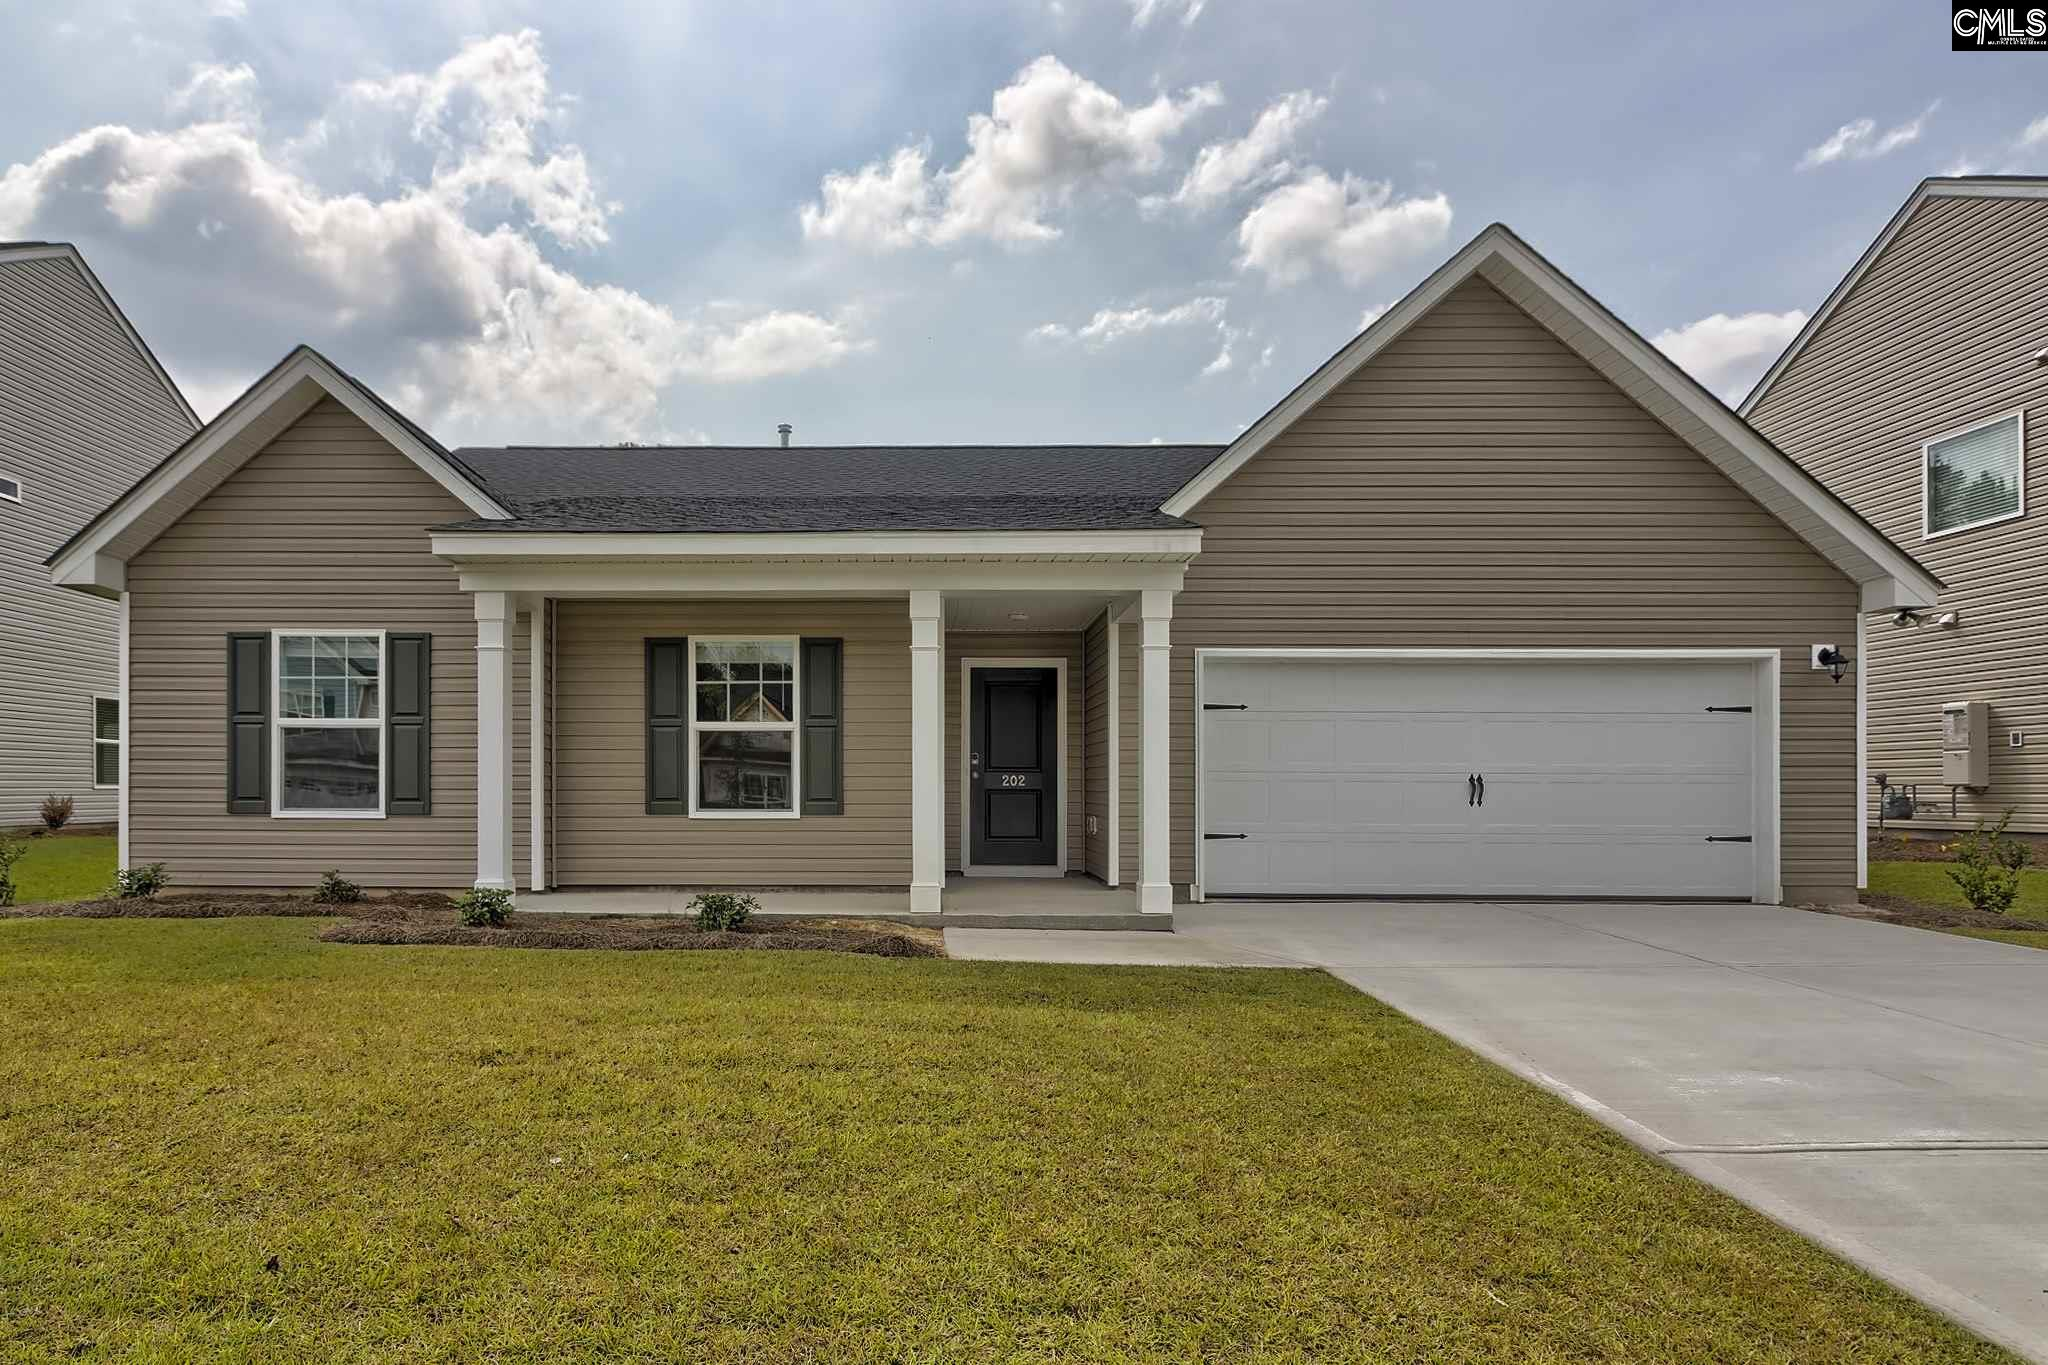 202 Turnfield West Columbia, SC 29170